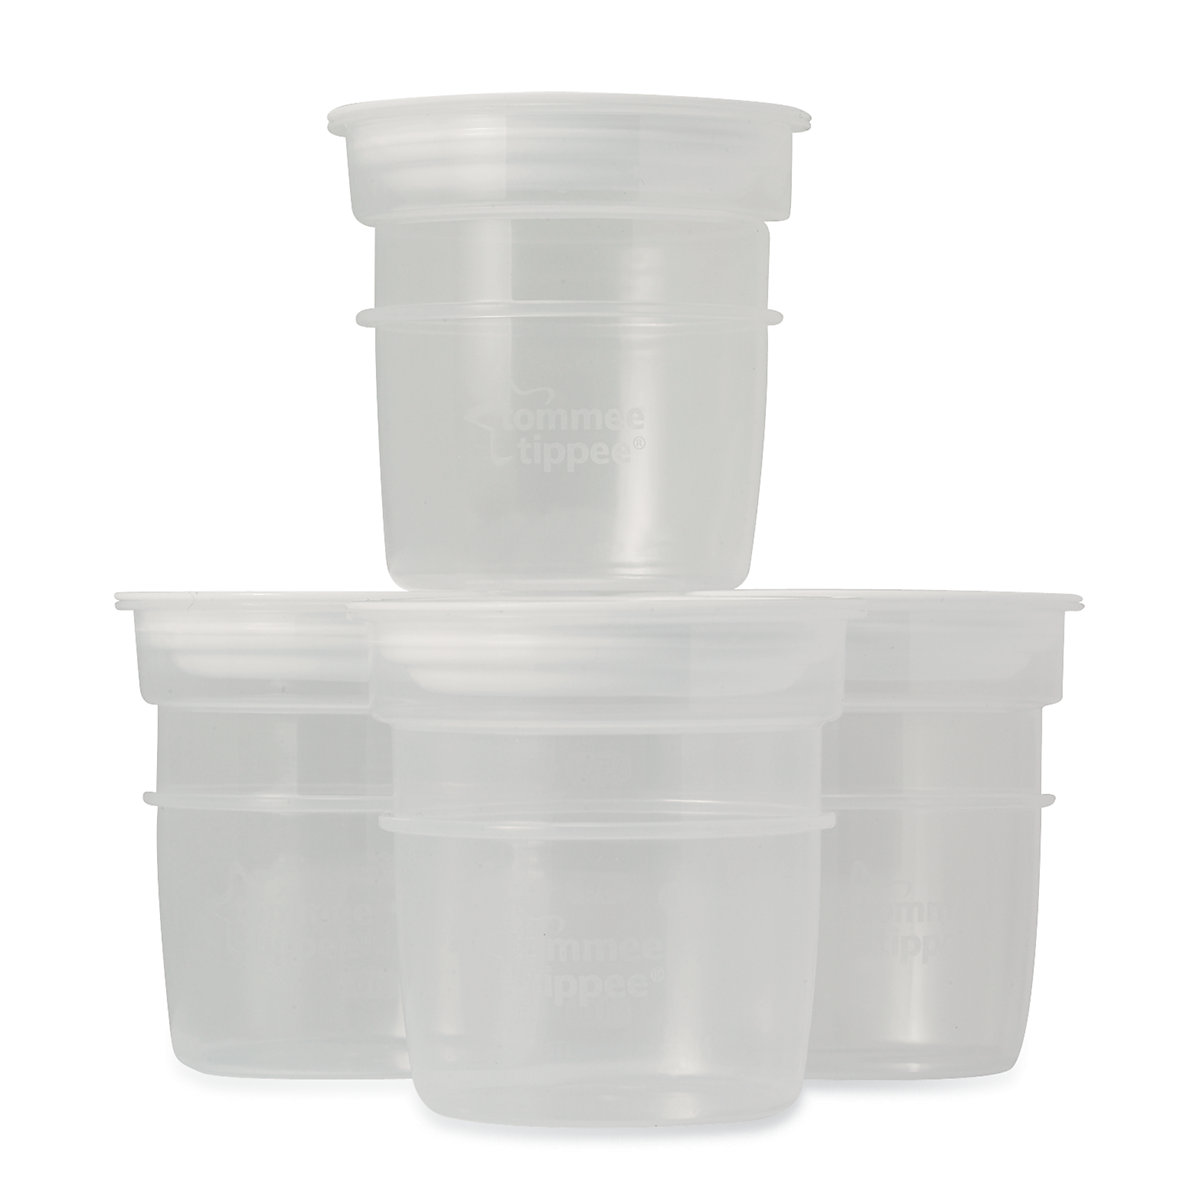 Tommee Tippee Closer to Nature Milk Storage Pots - 4 Pack